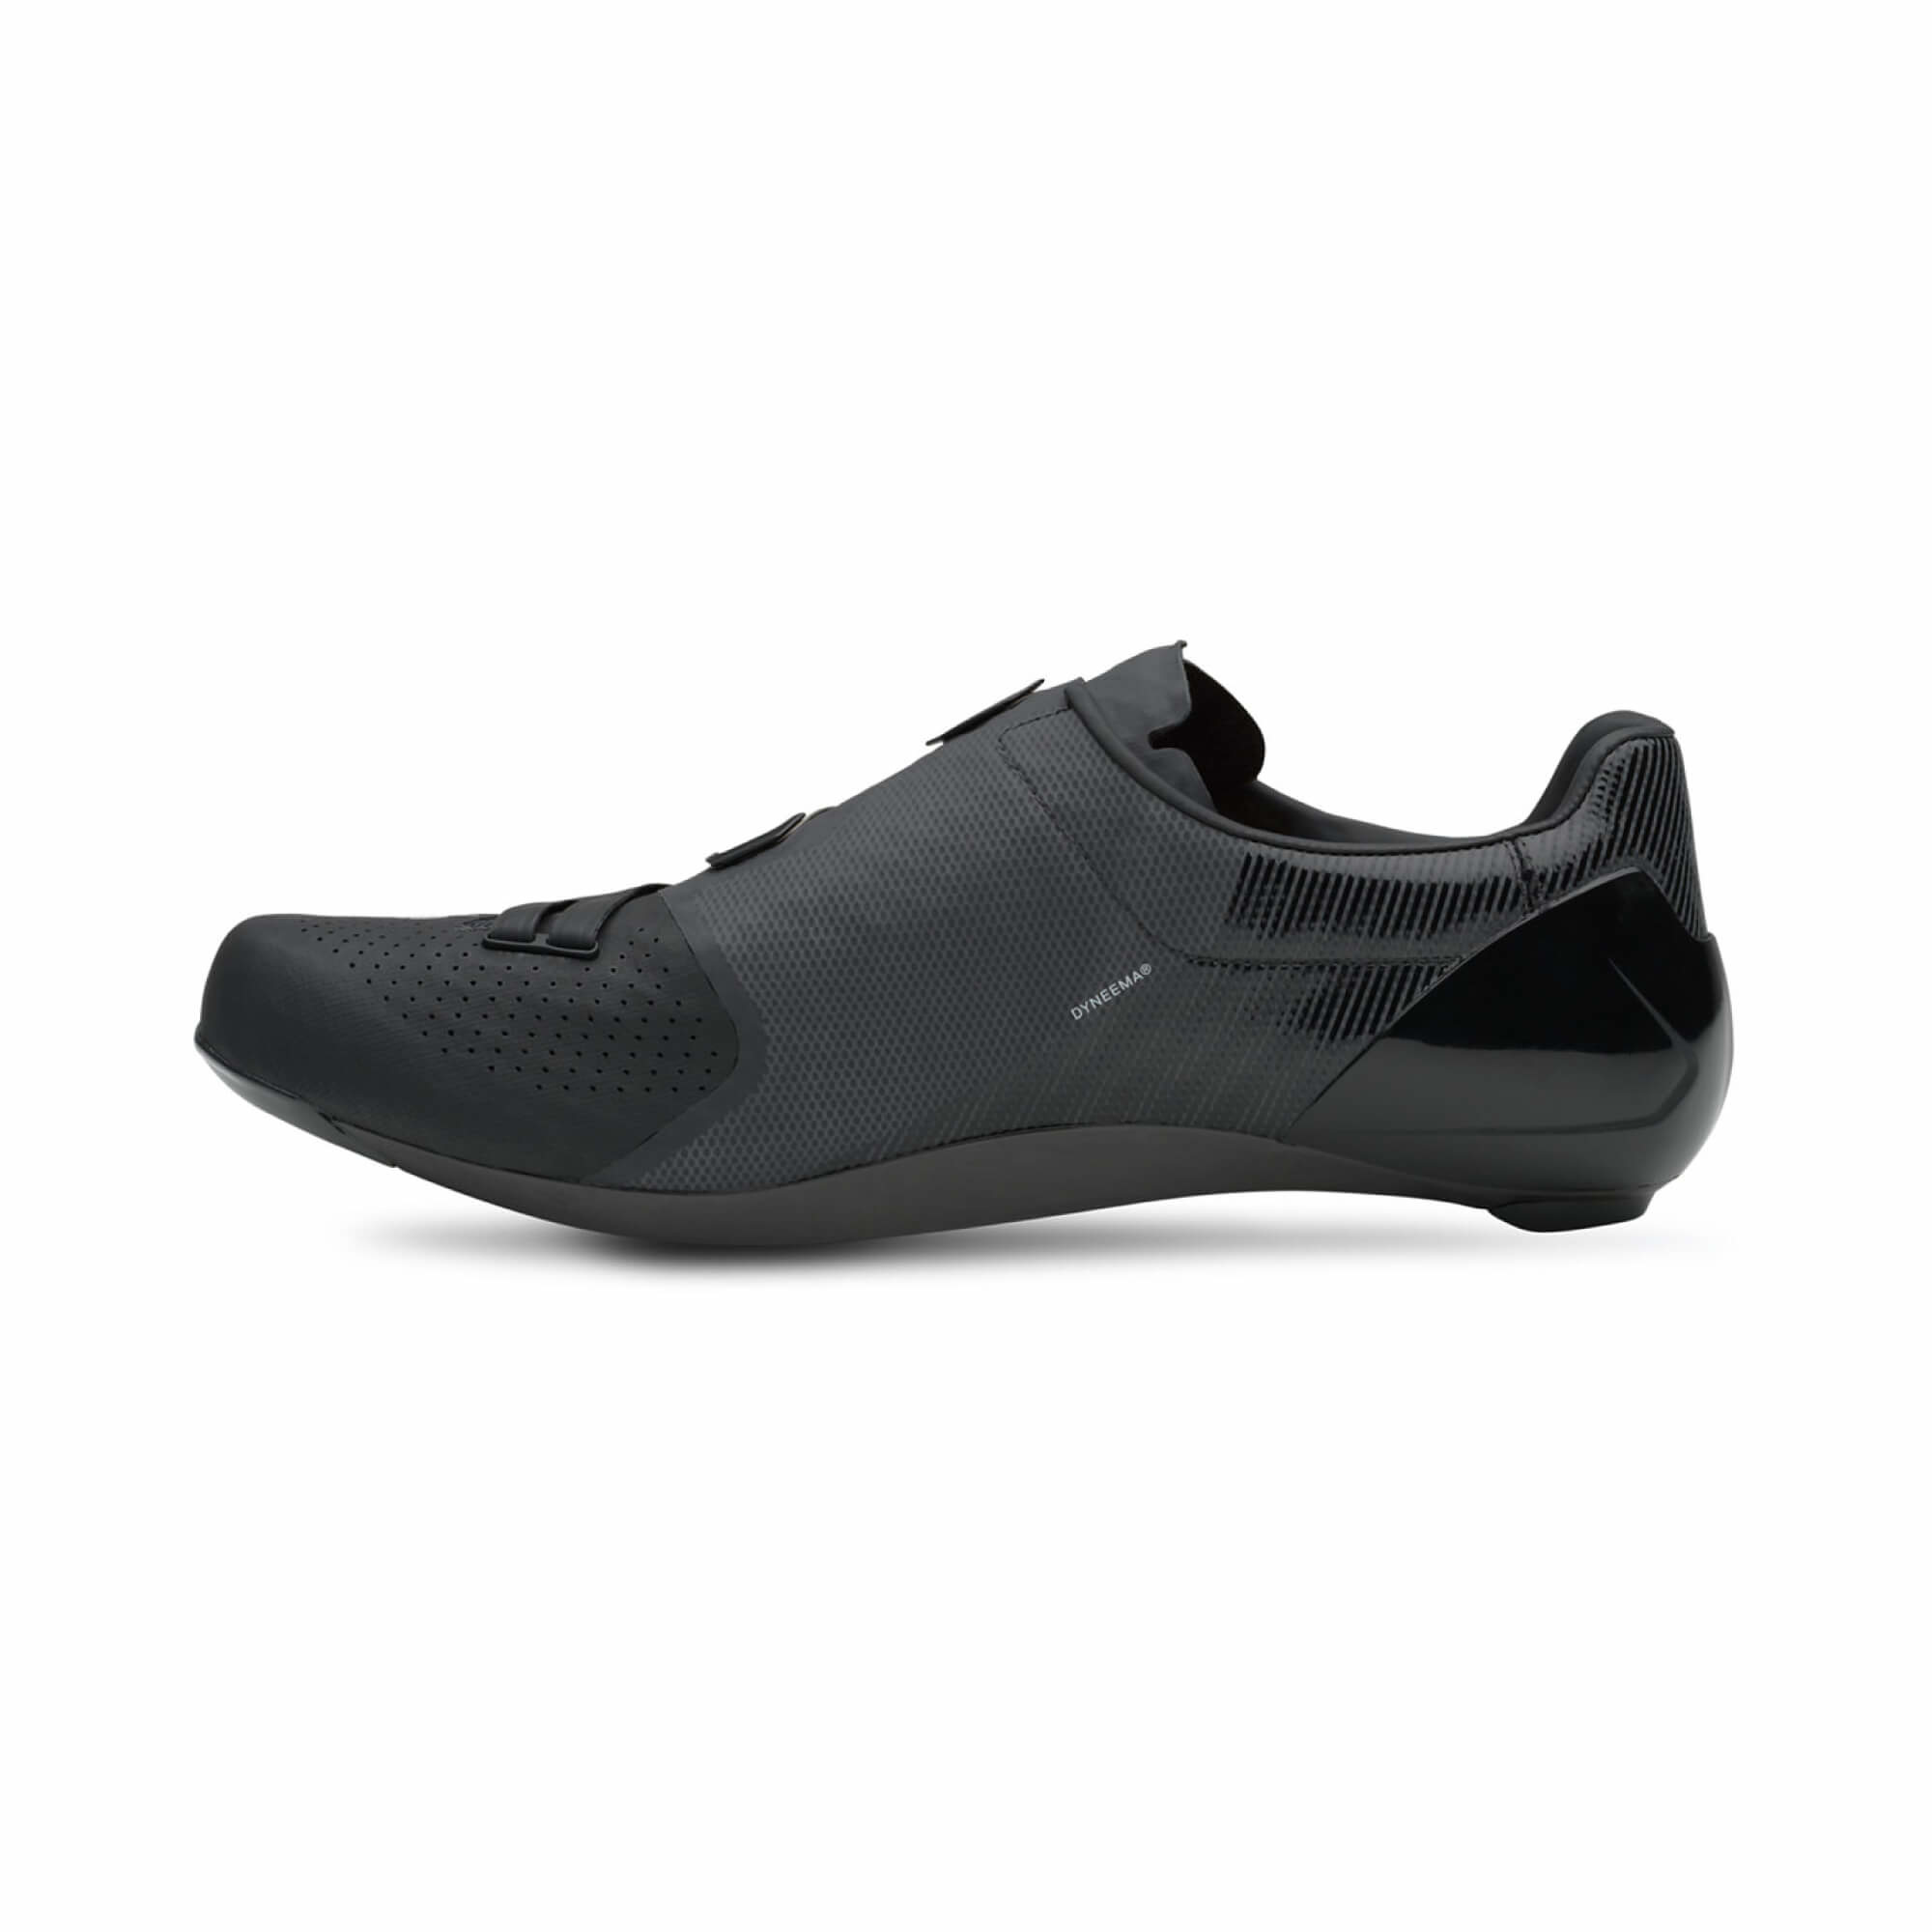 S-Works 7 Road Shoe-3